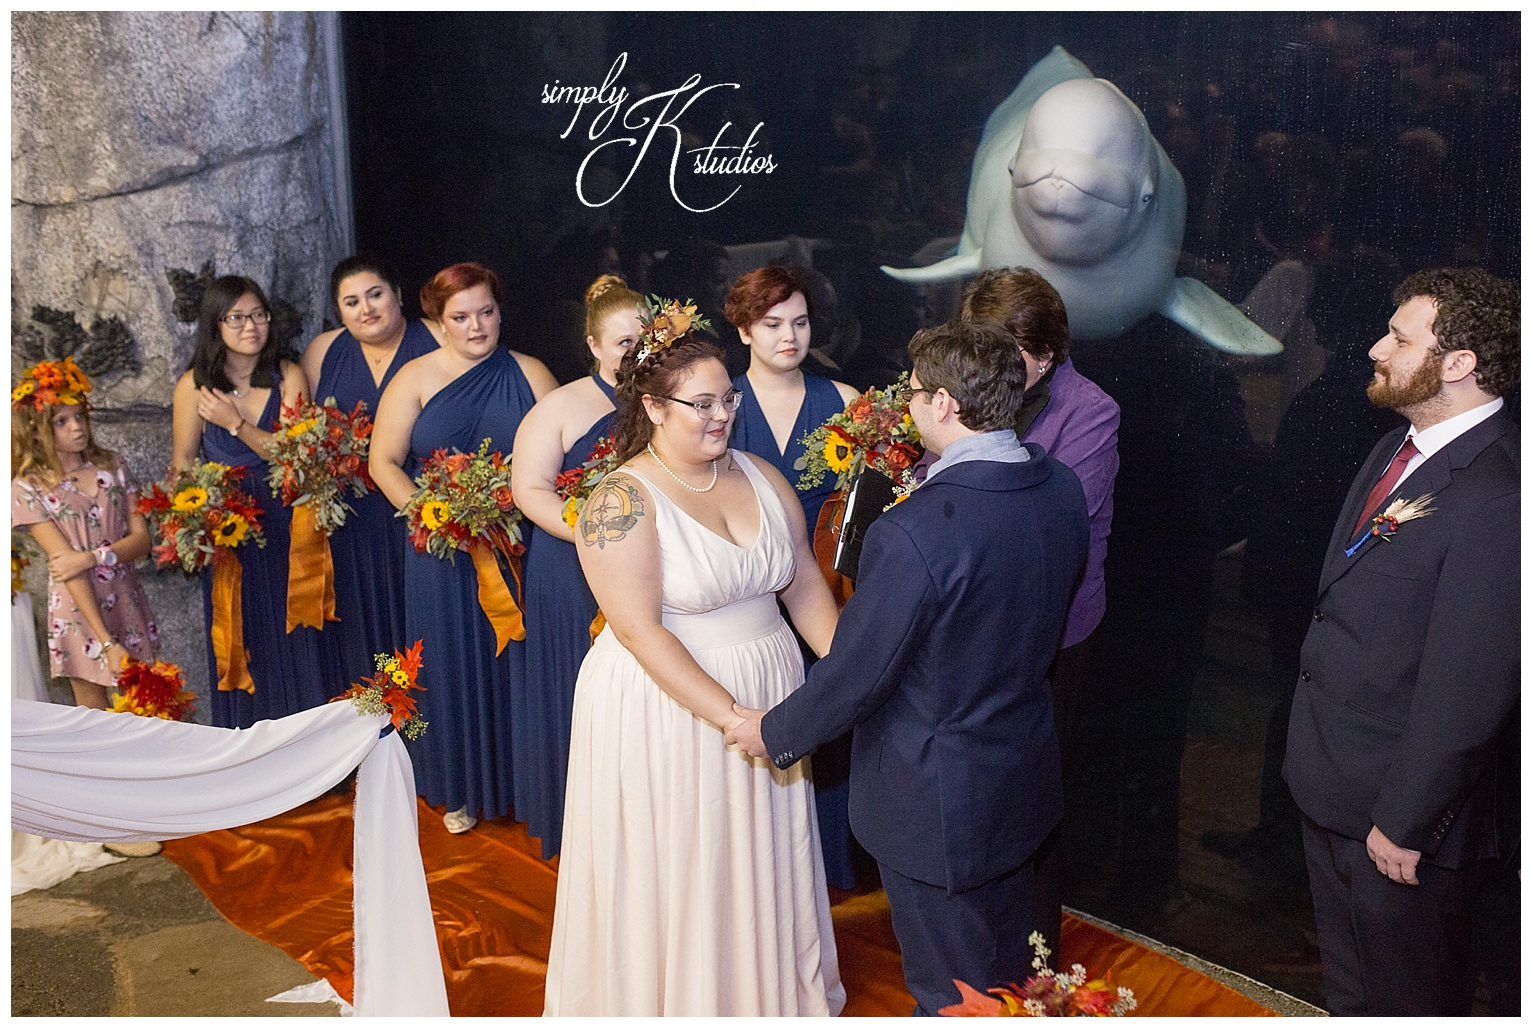 Aquarium Wedding ideas.jpg